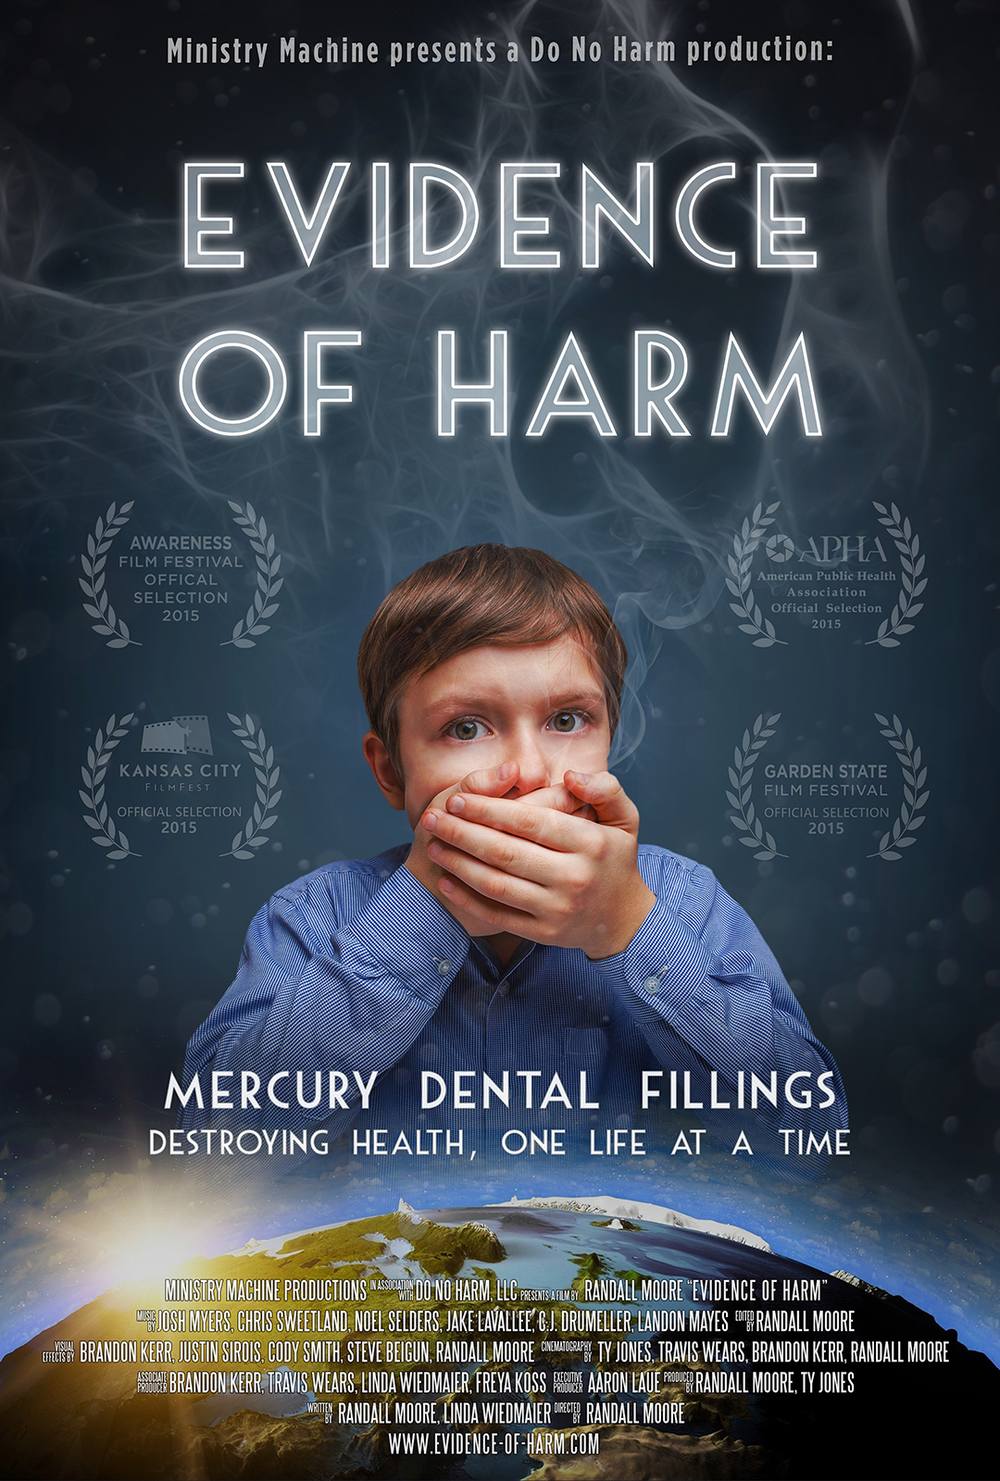 A great documentary on the effects of metal fillings